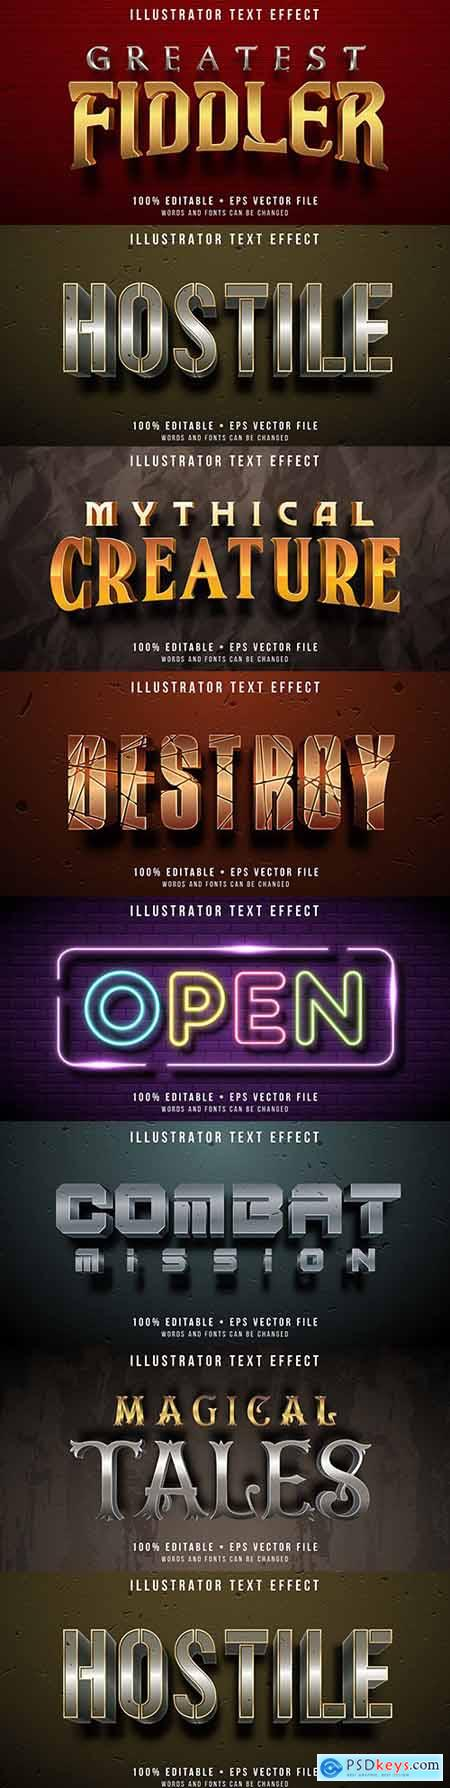 Editable font effect text collection illustration design 76